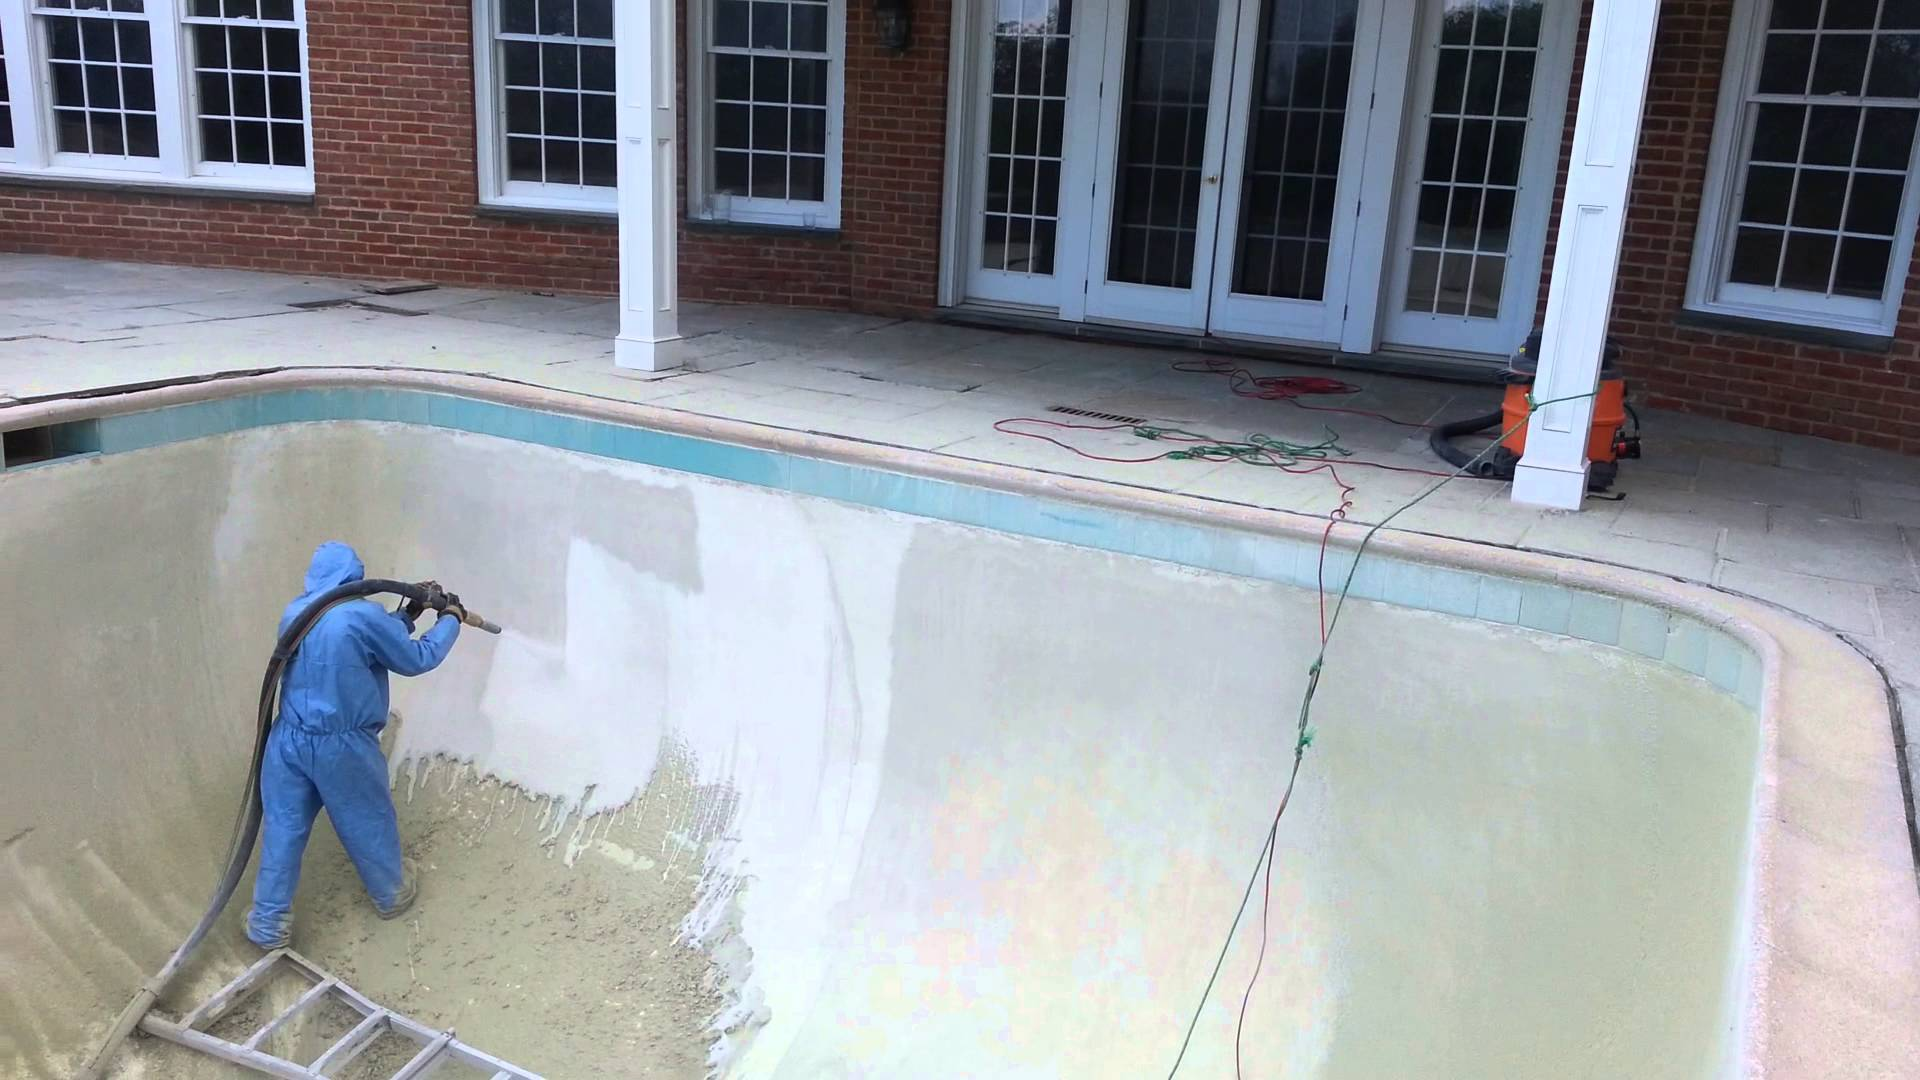 Sandblasting and dustless blasting - Pool surface preparation, calcium and stain removal